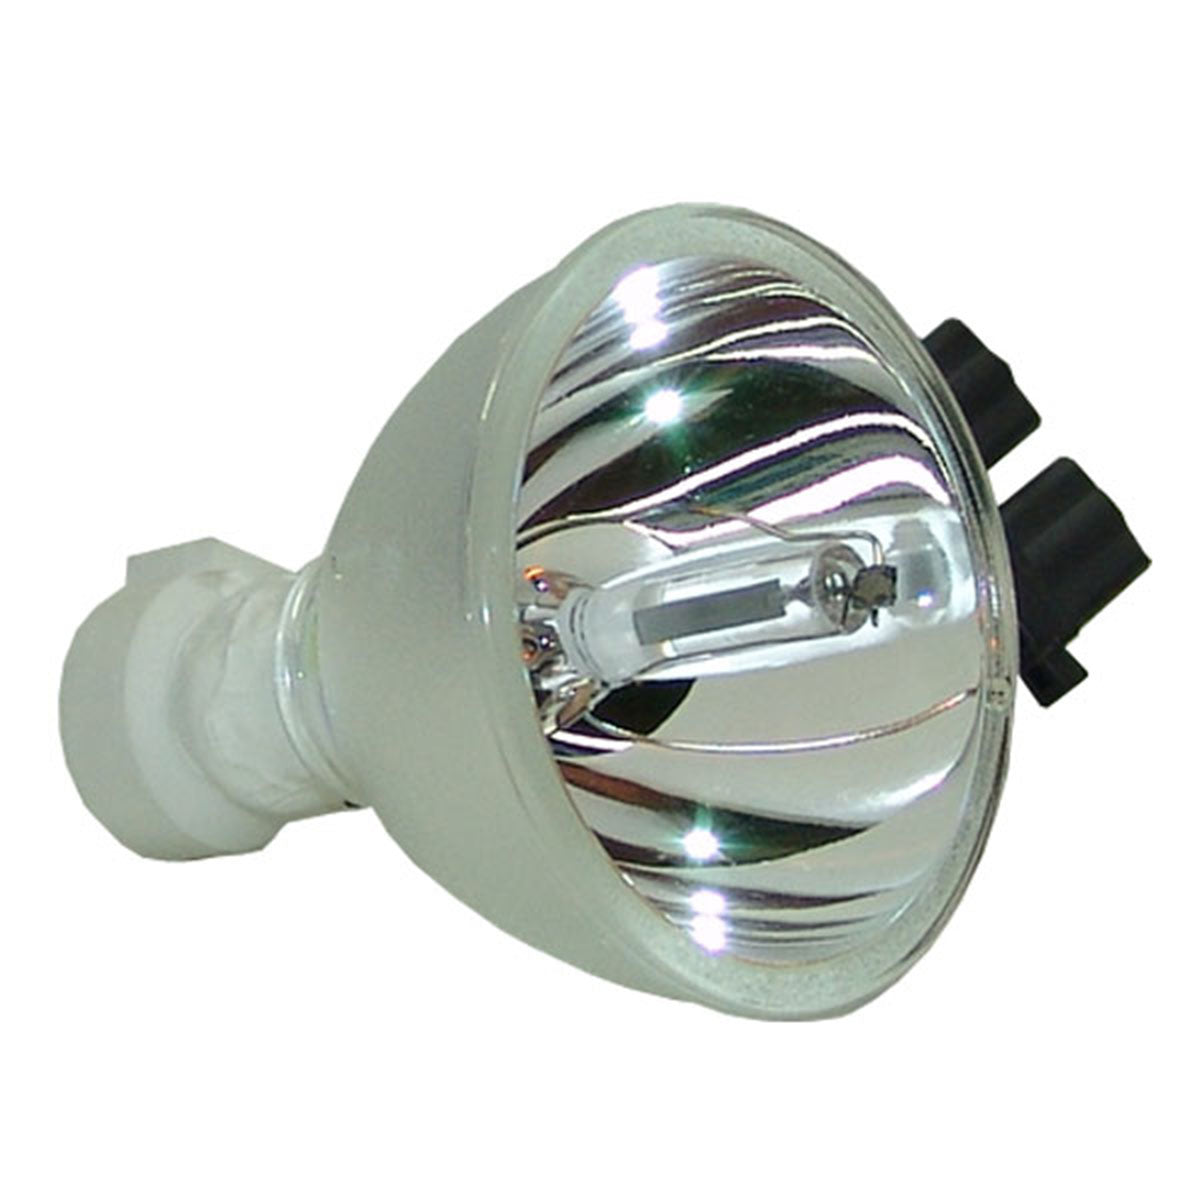 PLUS U6-112 Phoenix Projector Bare Lamp